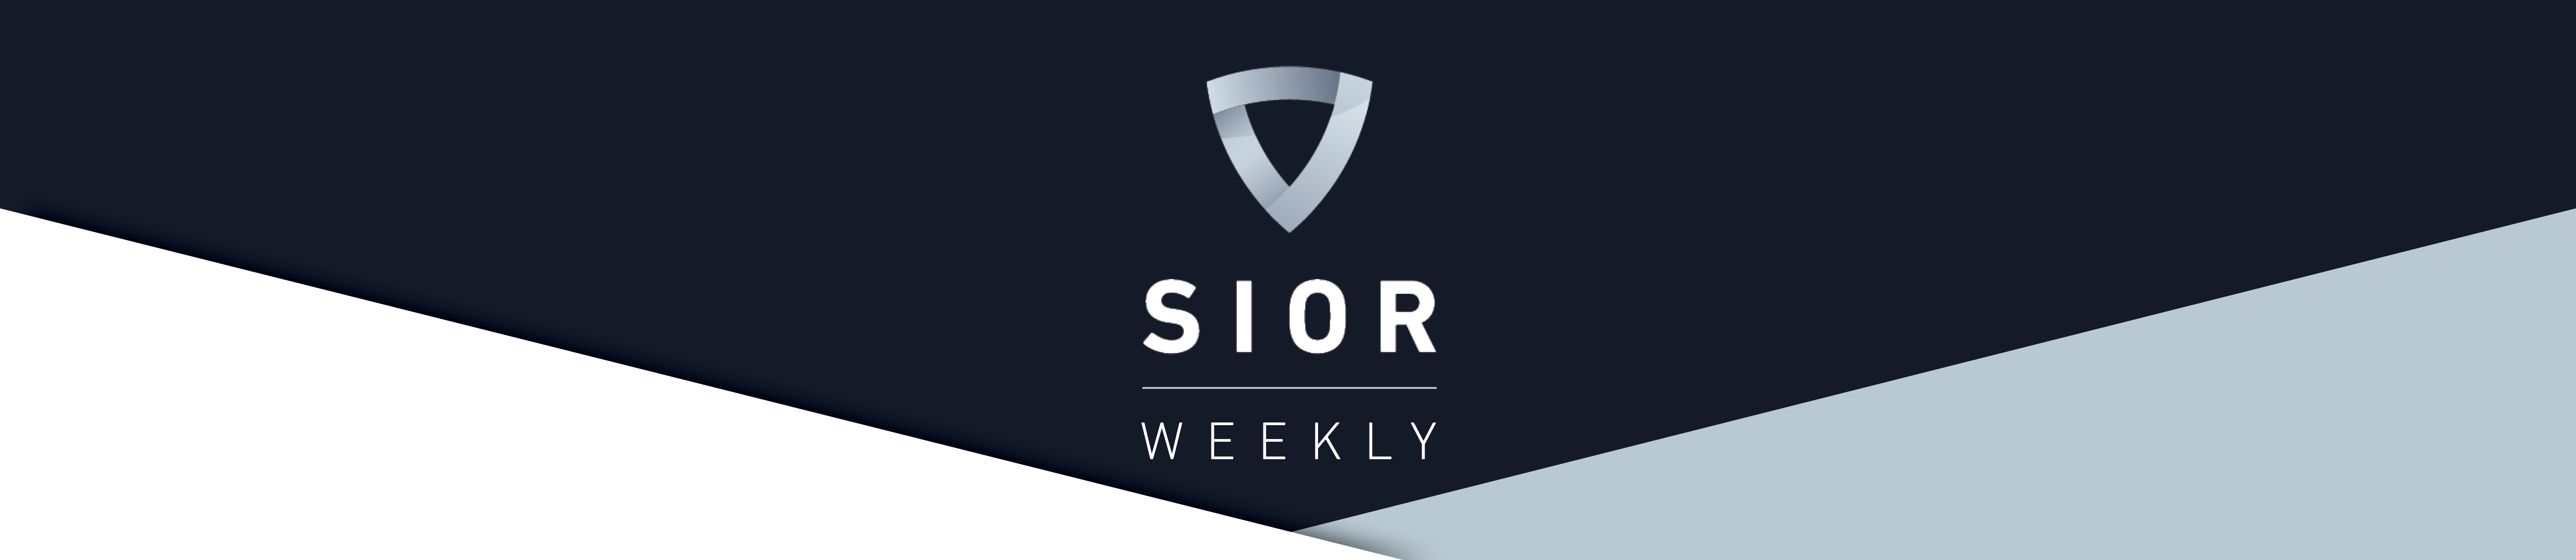 SIOR Weekly